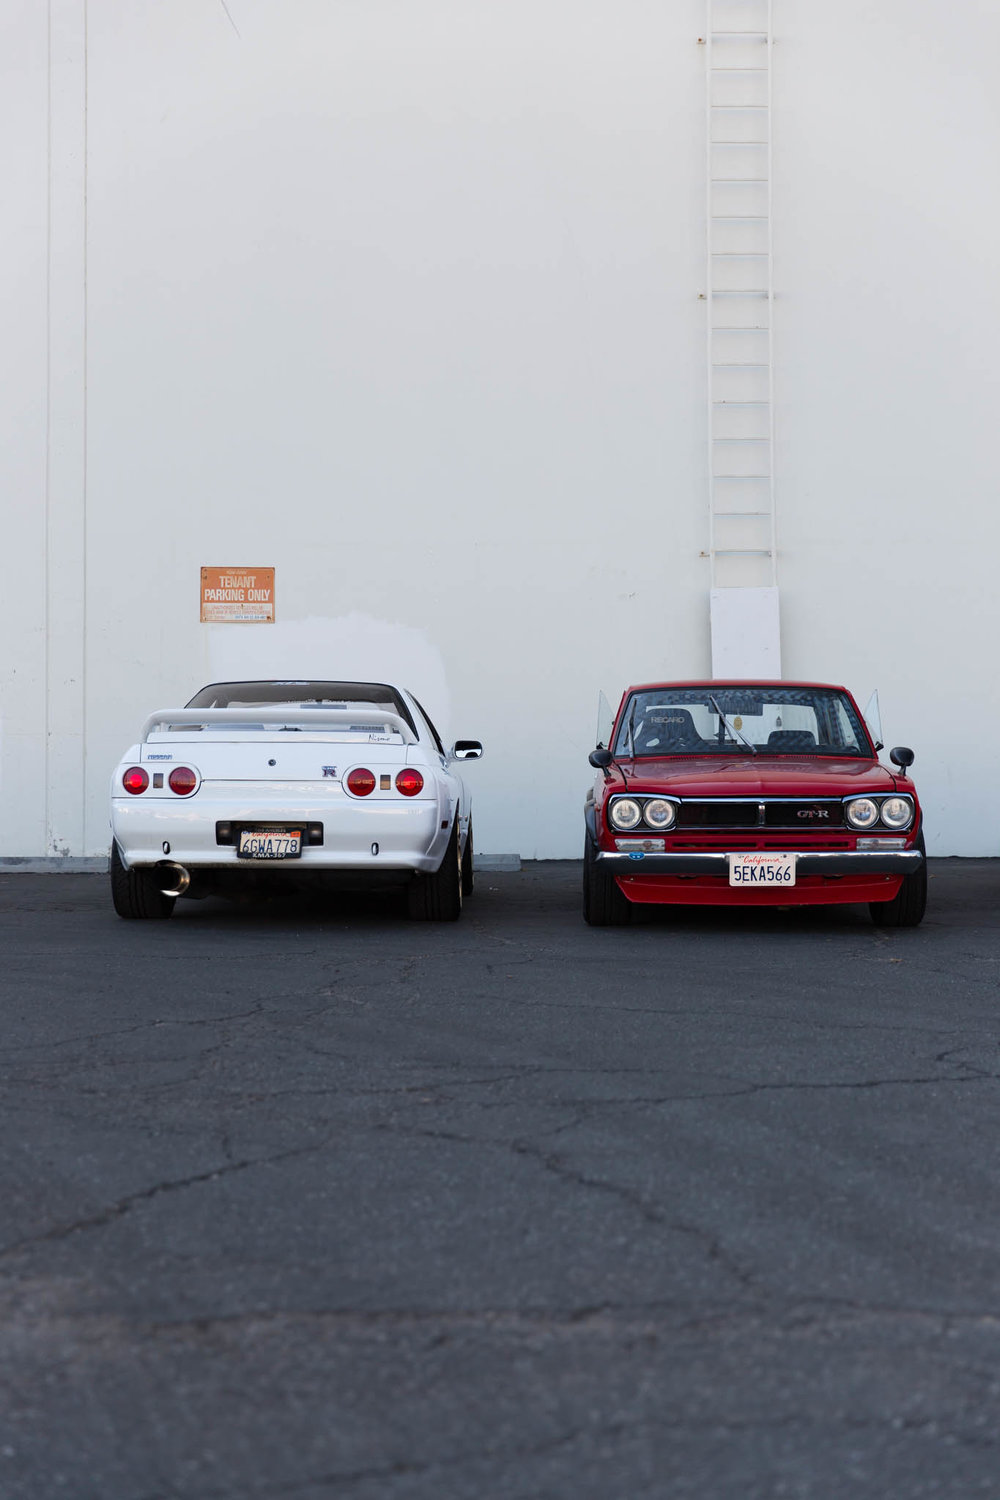 Stay_Driven_Skyline_Syndicate_Shoot_1-5.jpg